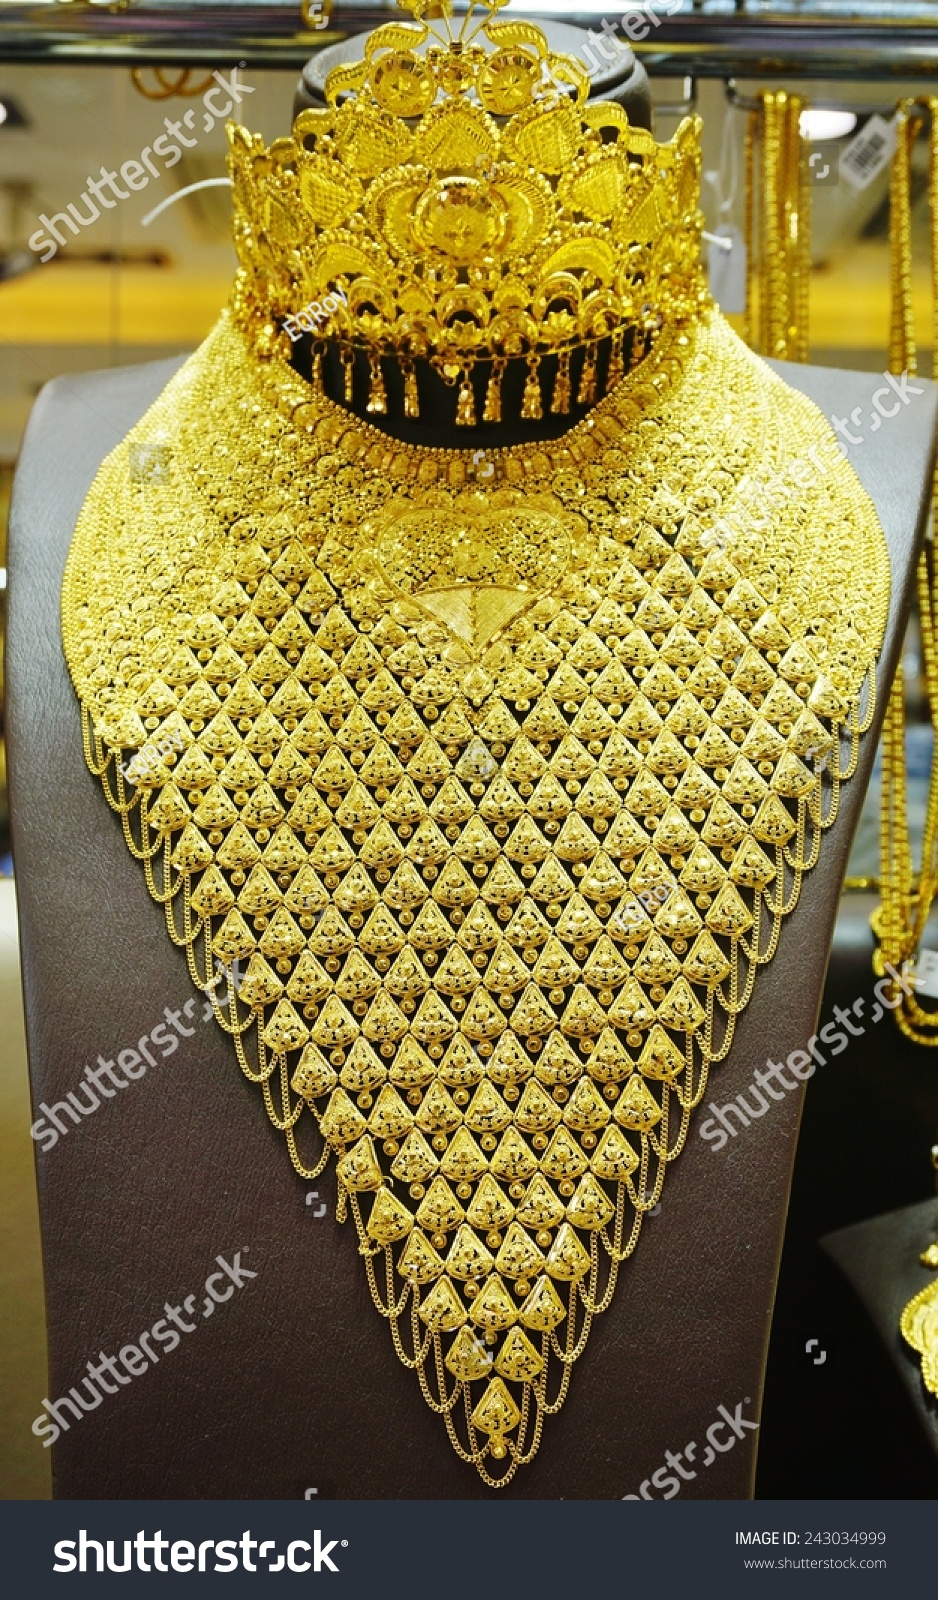 Online gold trading uae